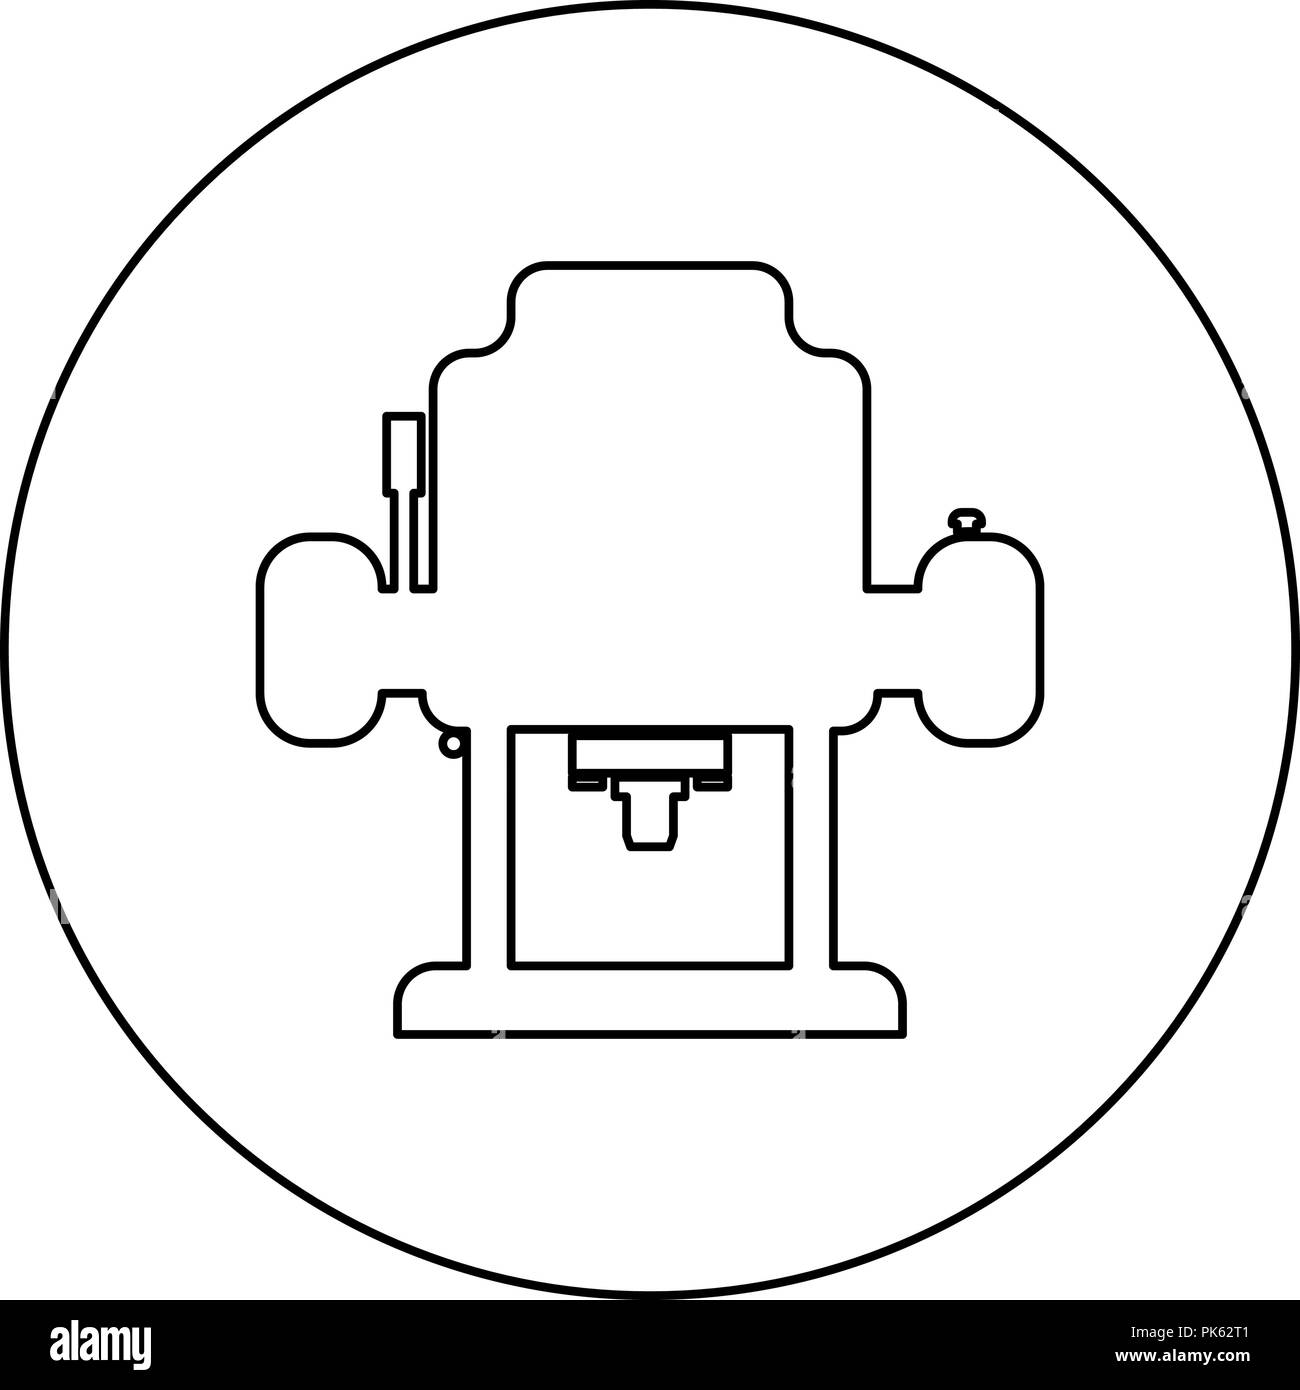 Milling cutter icon black color in round circle outline vector I - Stock Vector